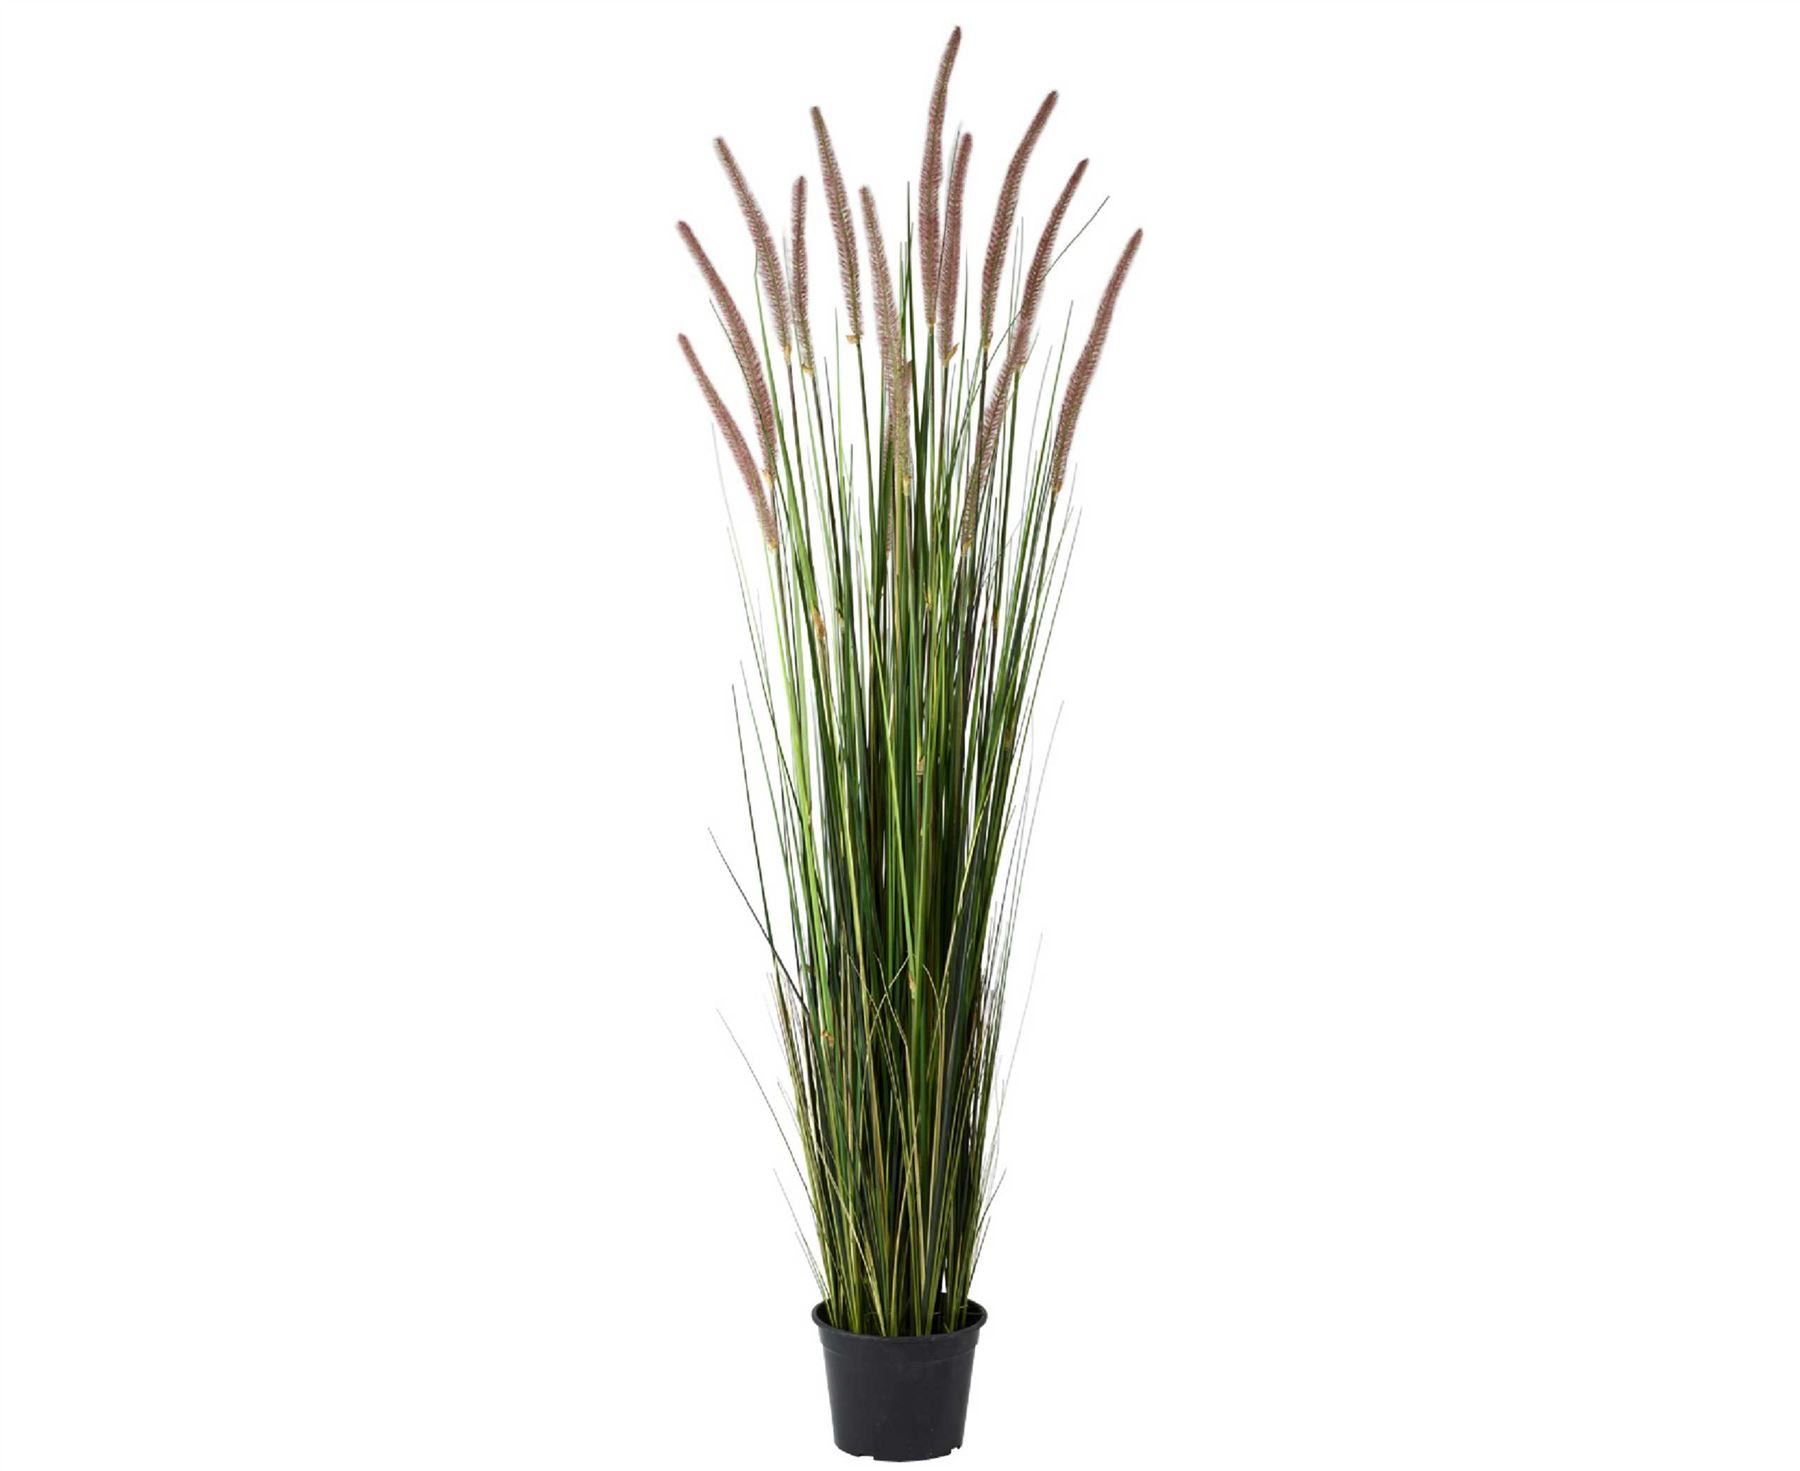 Bloom 5ft potted grass tall 150cm artificial plant home for Tall ornamental grass plants